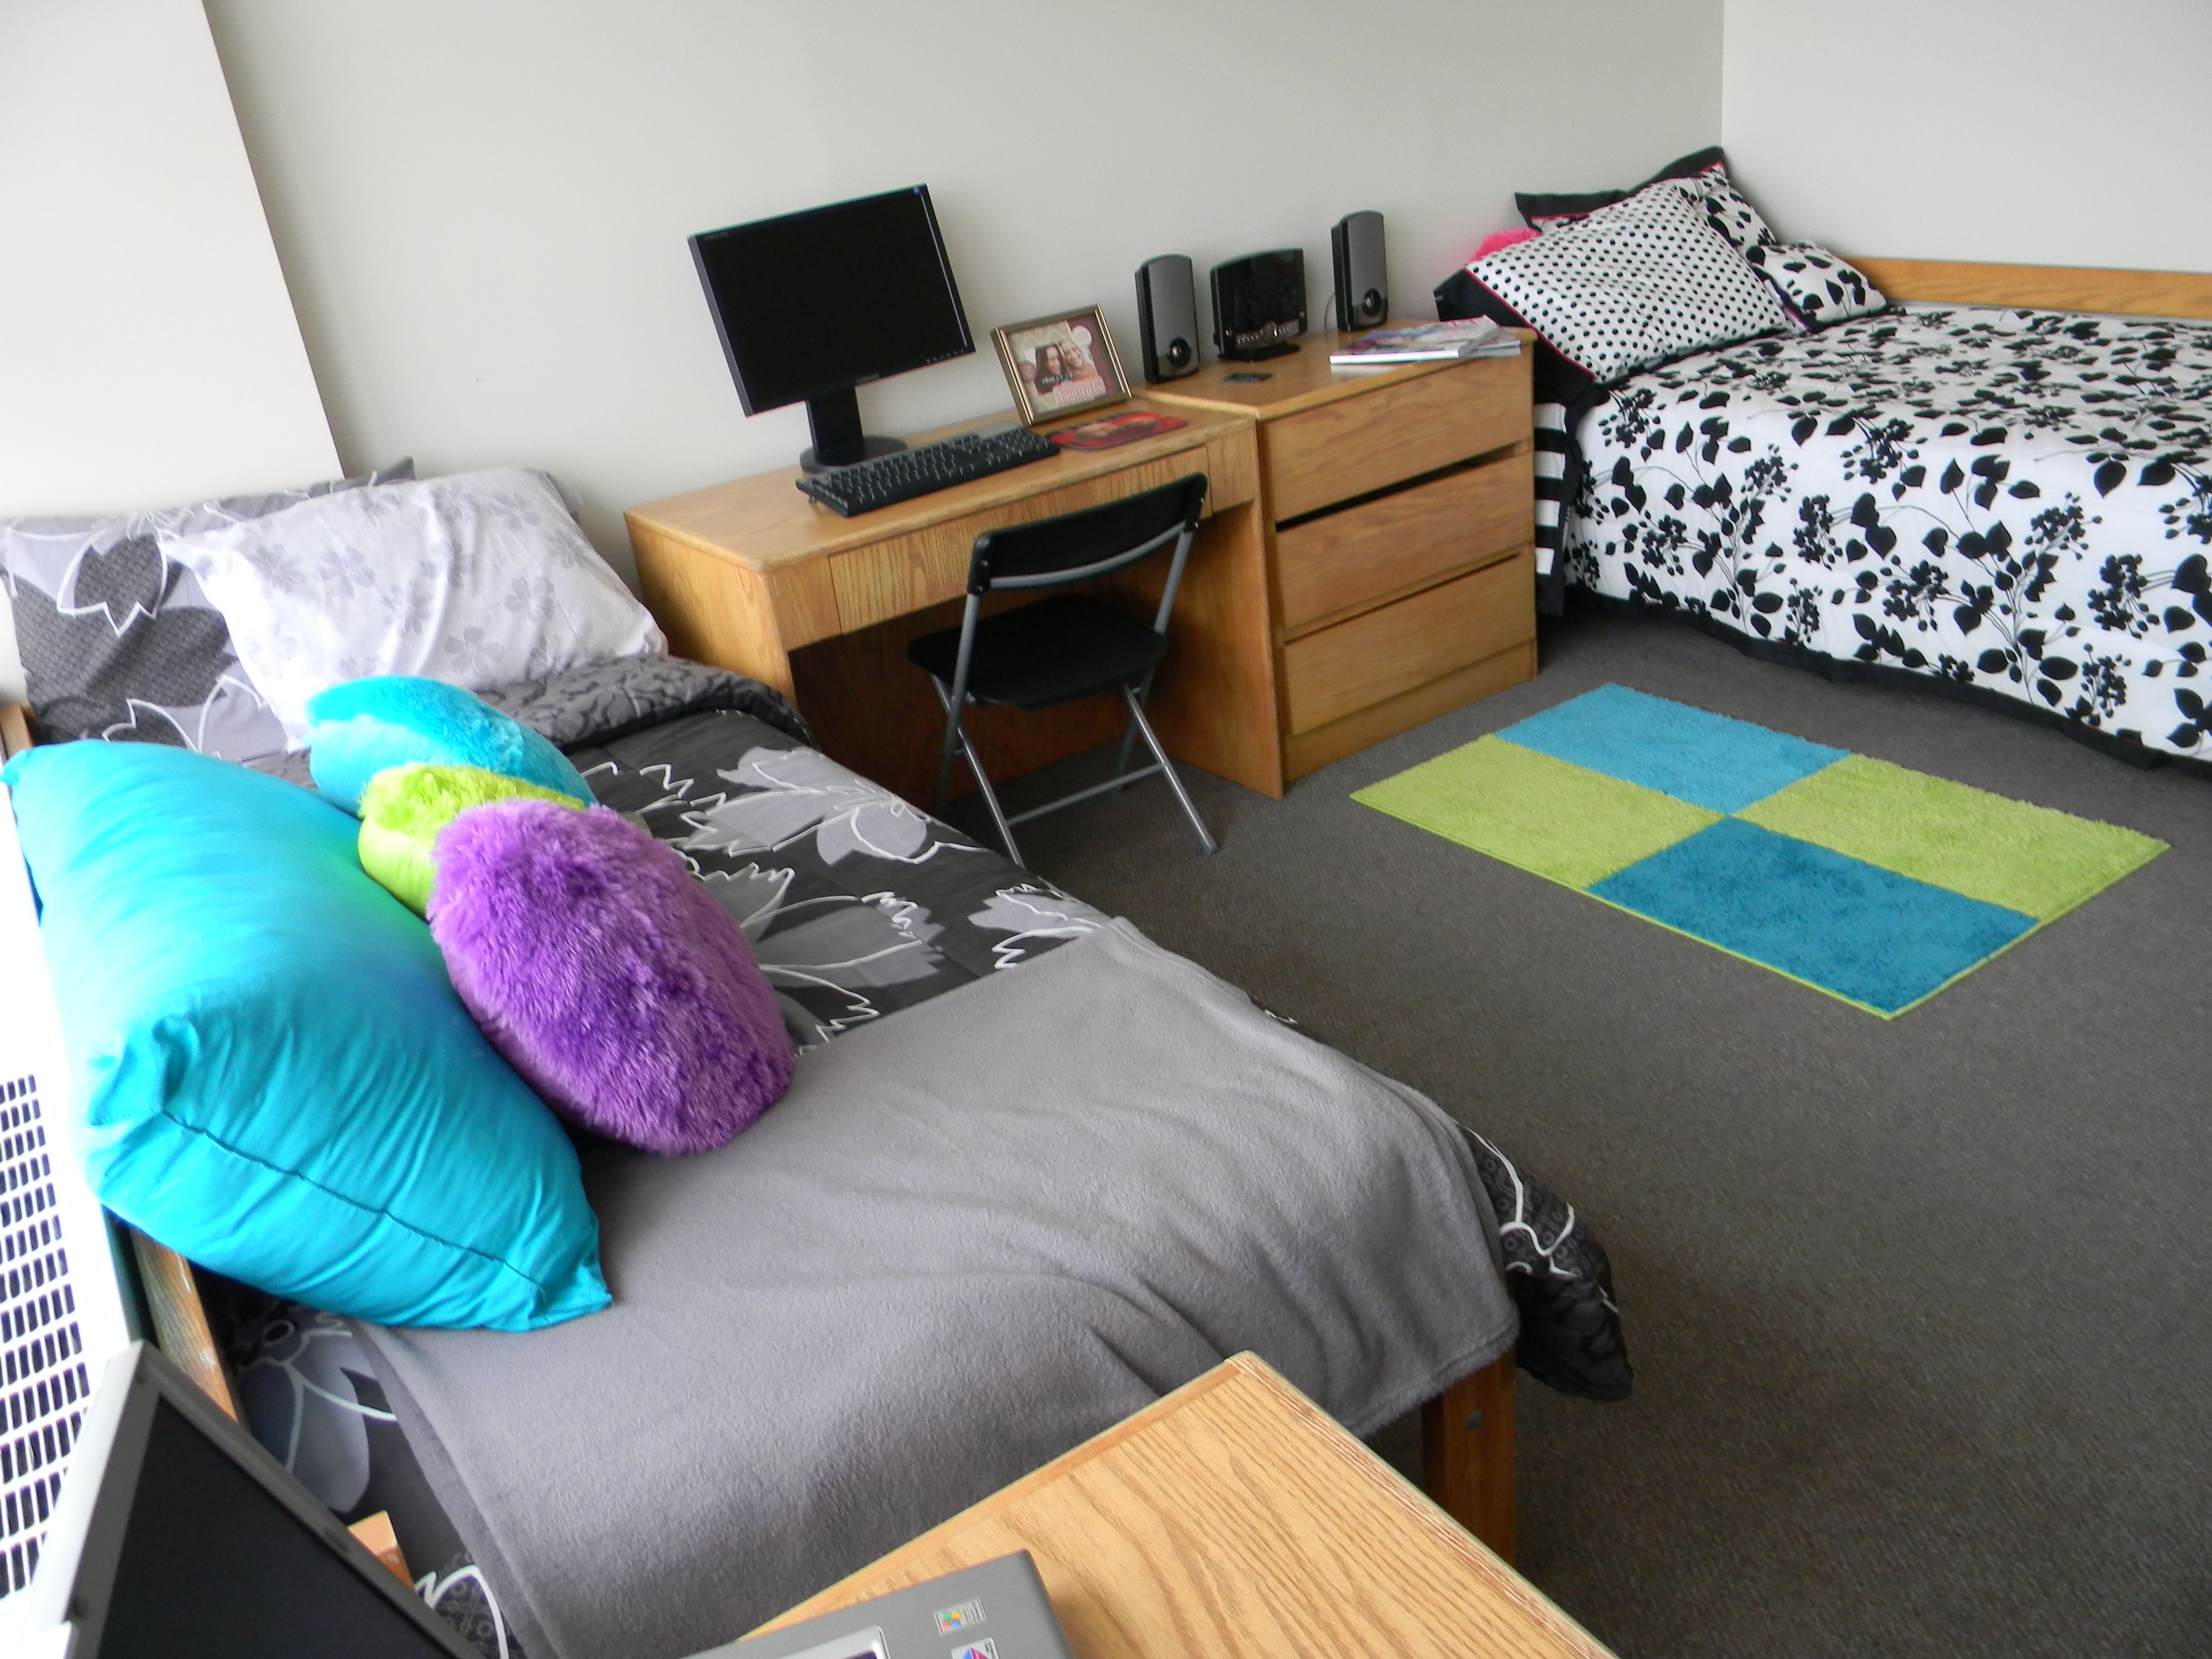 Double room uplaza with images bean bag chair dorm